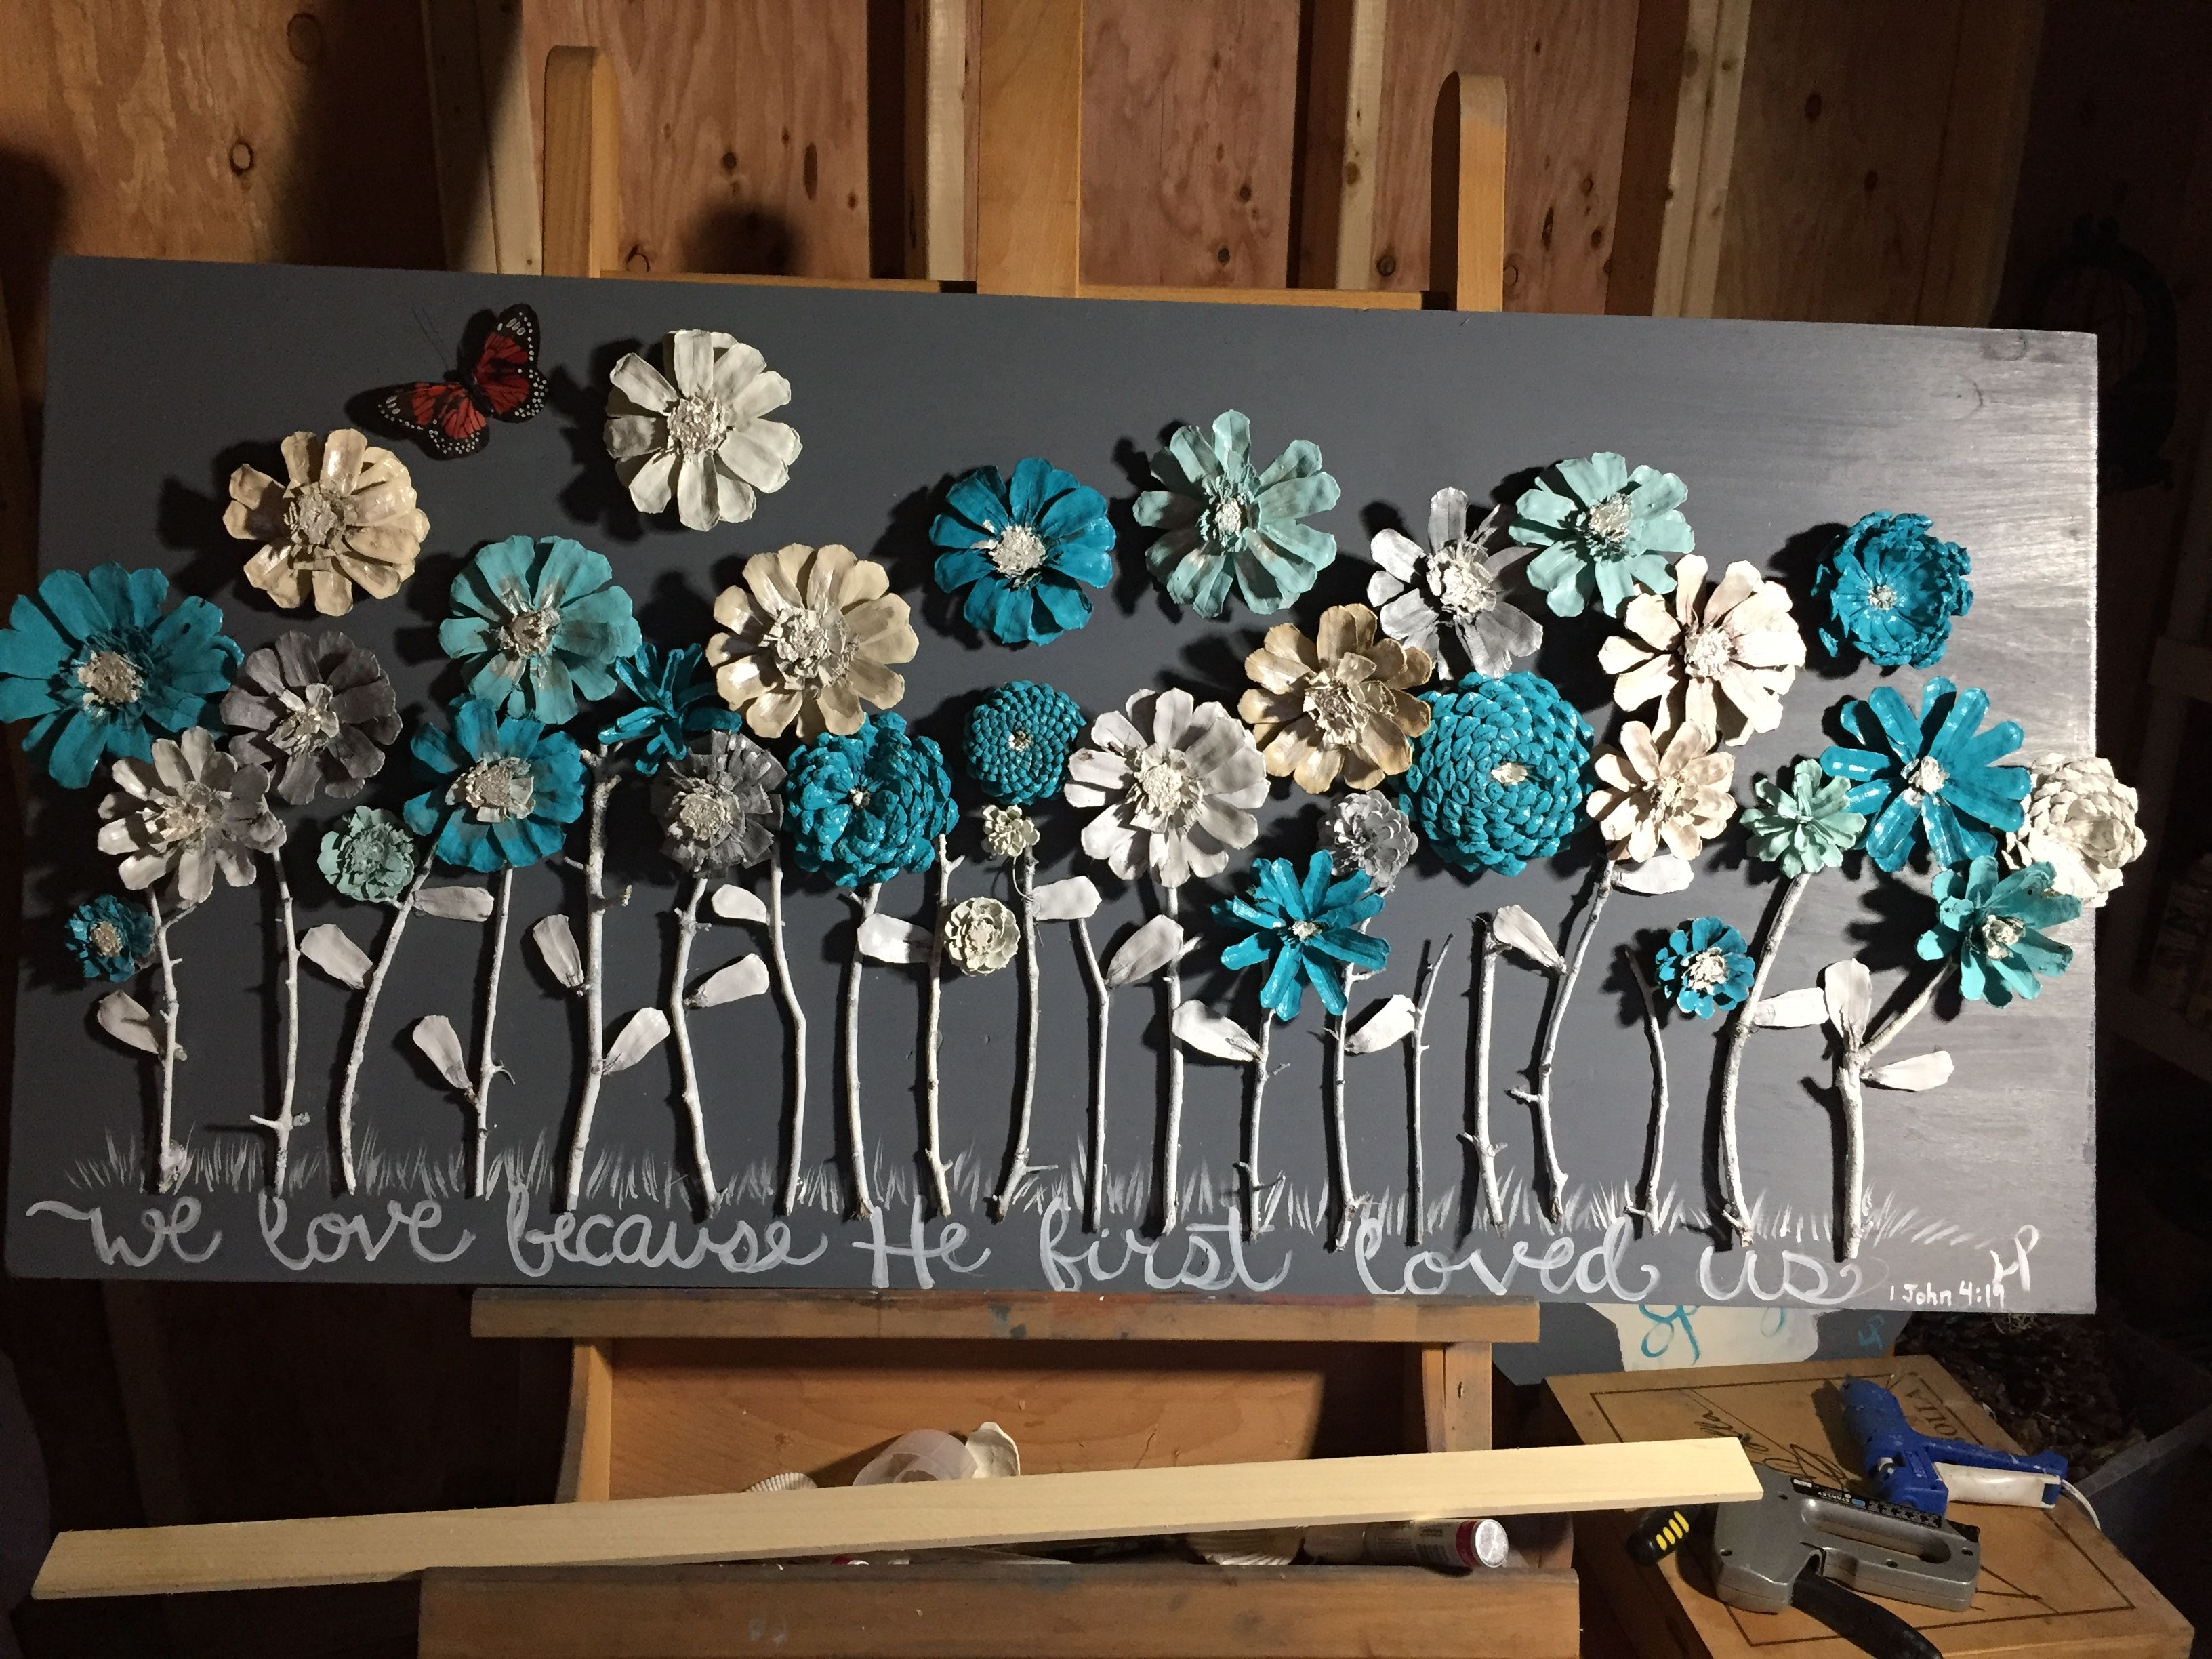 pinecone decor by linda p linda 39 s creations pinecone crafts kids crafts pine cone decorations. Black Bedroom Furniture Sets. Home Design Ideas